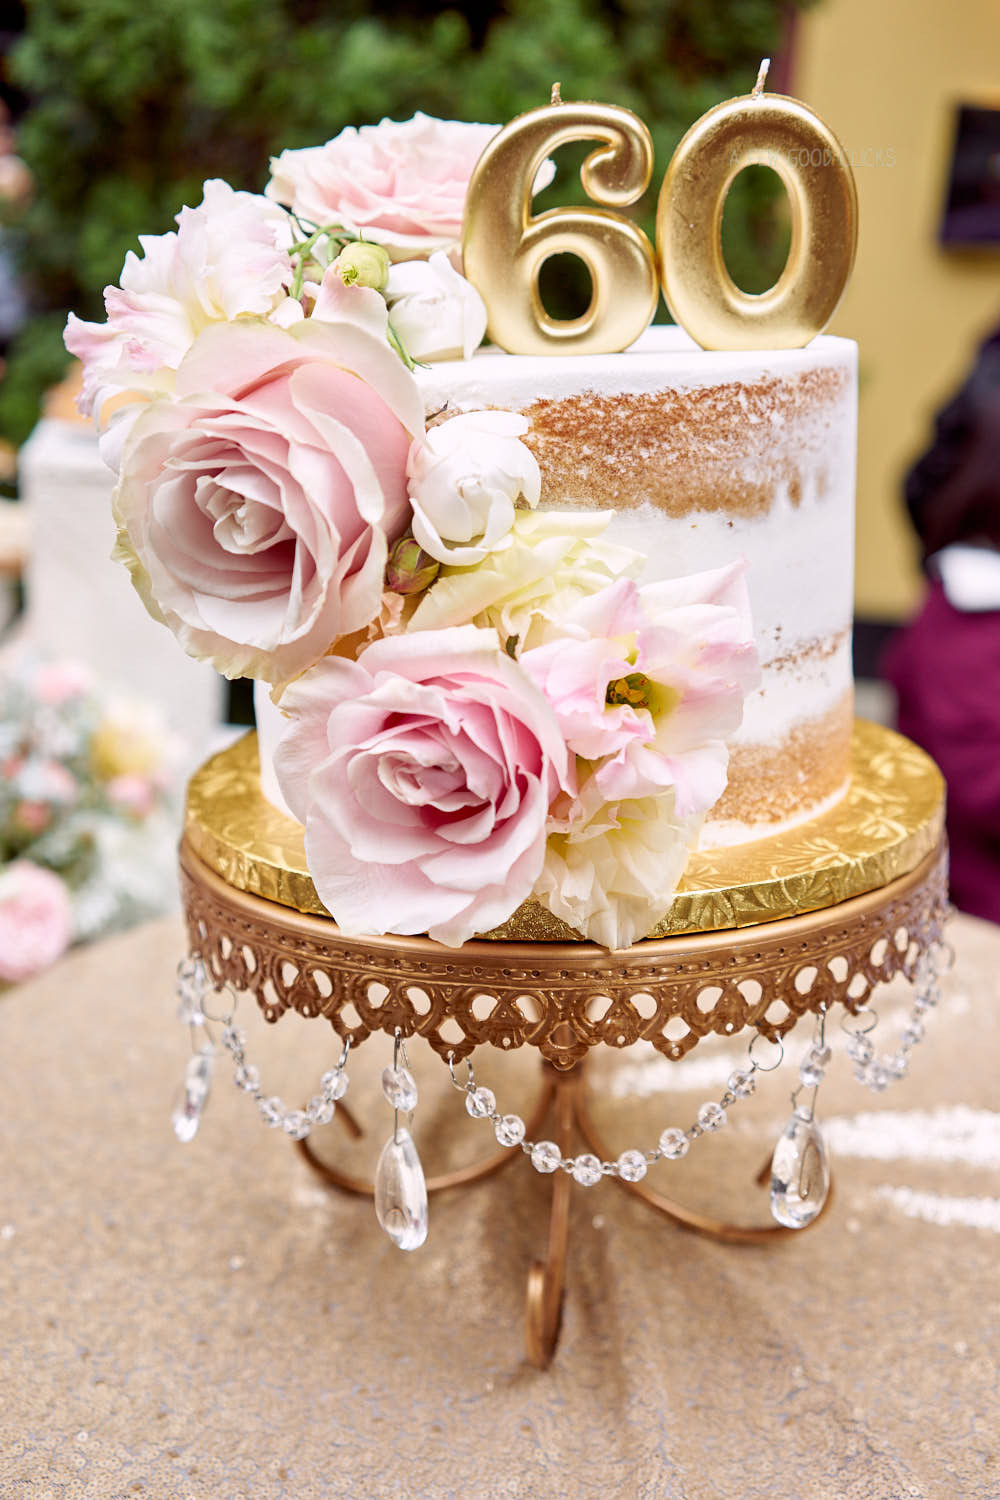 60th Birthday Cake Ideas  Celebrate your 60th Birthday with A Few Good s